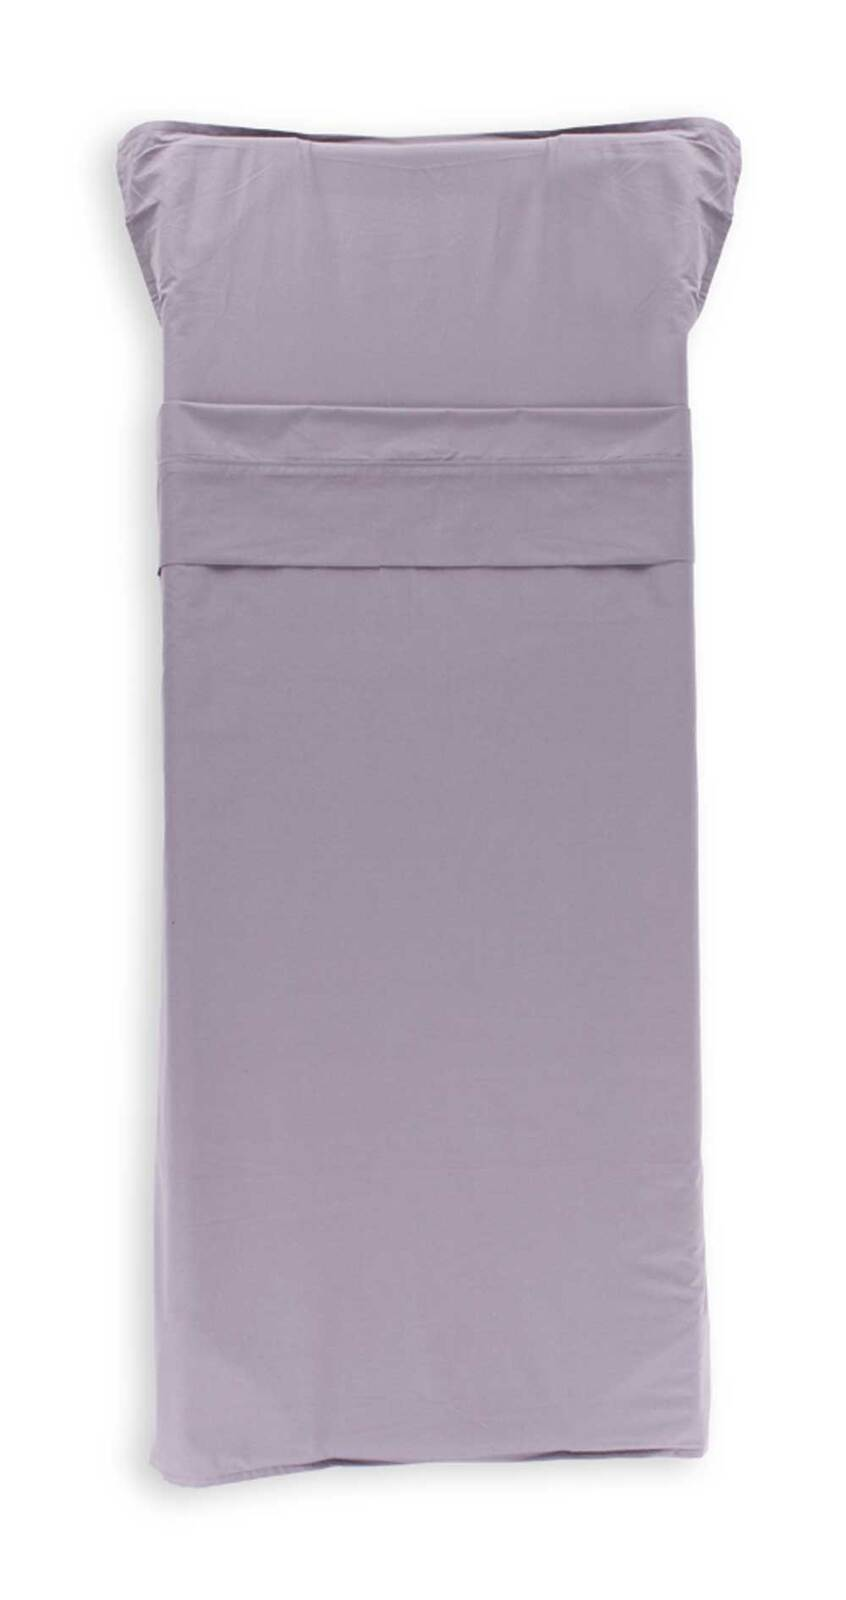 Studio Play Combination Sleep Bed/Mat Sheet Set - Grey